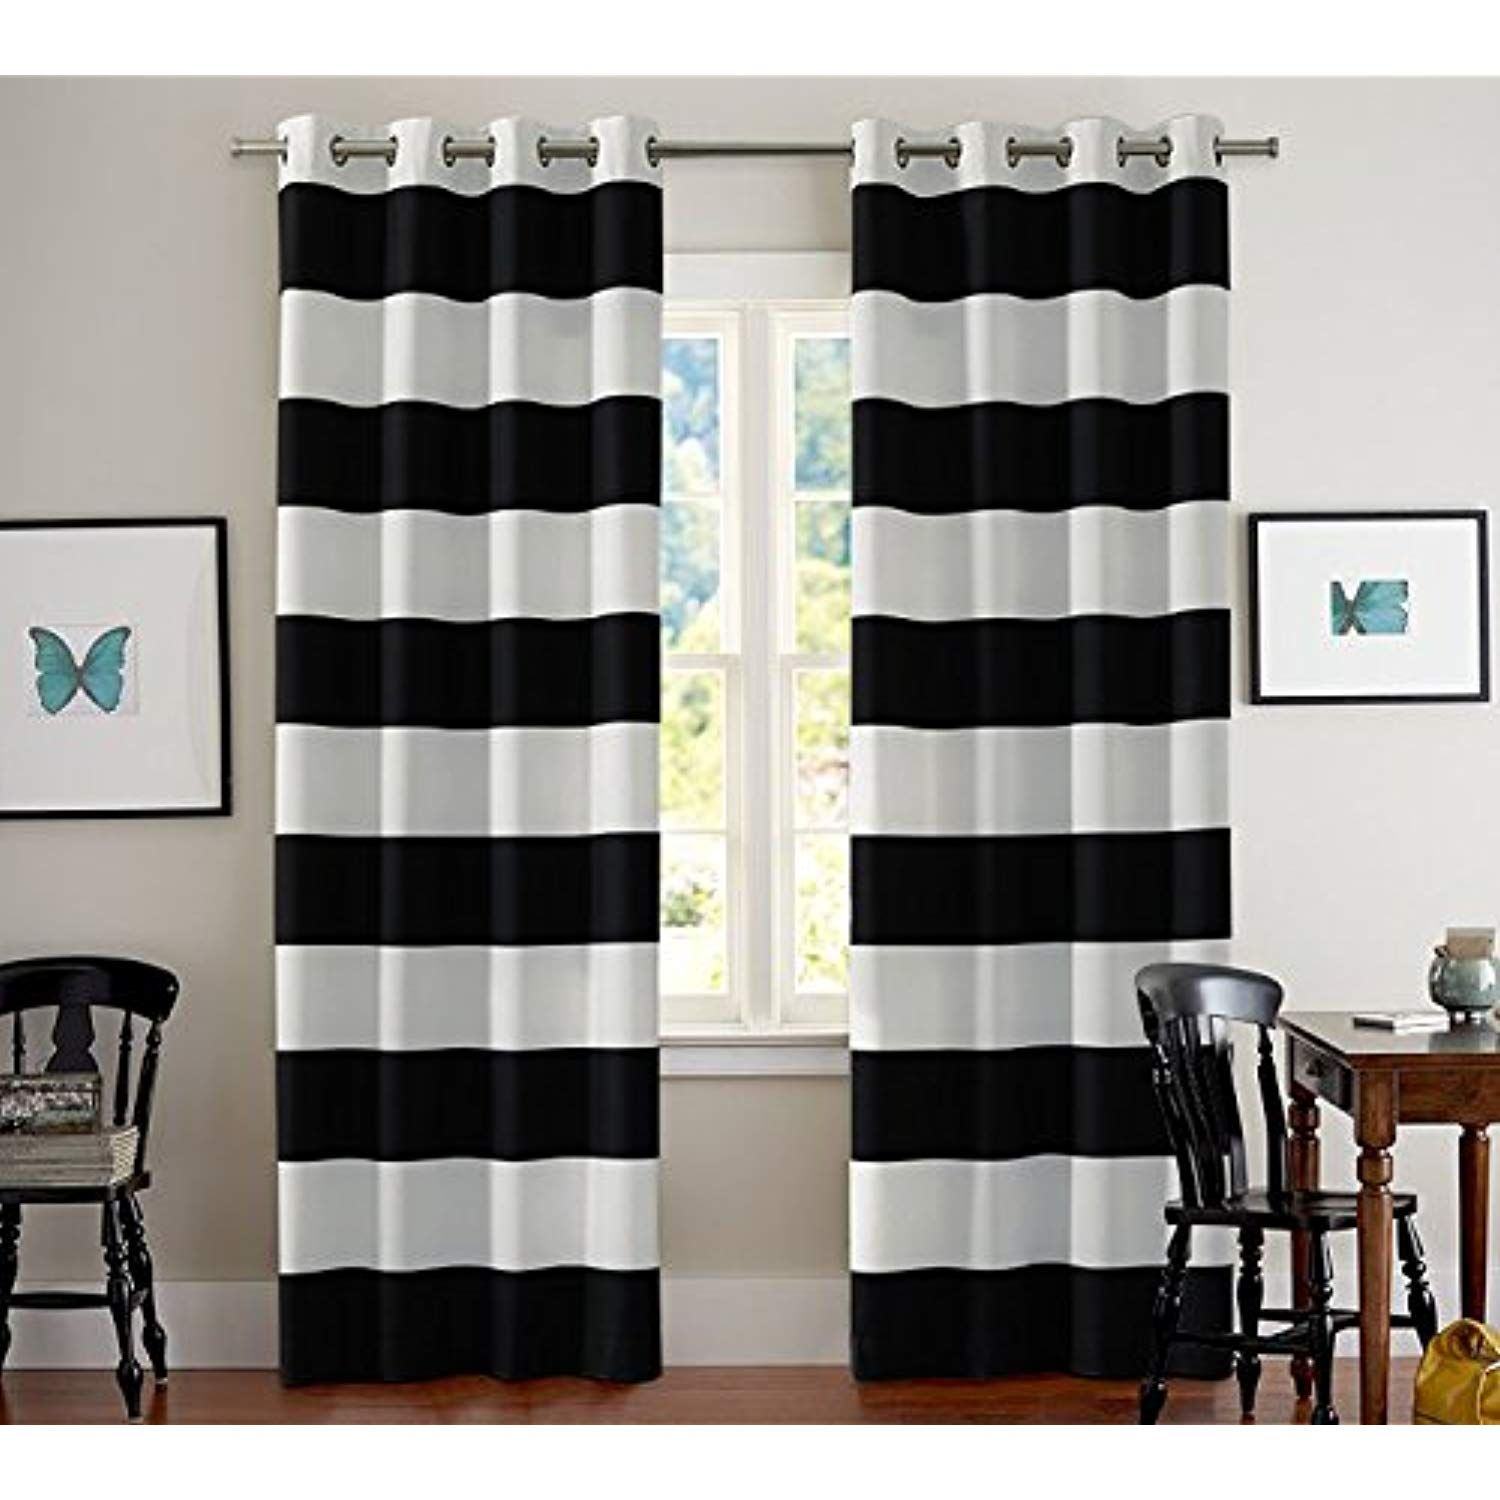 Turquoize Black And White Stripes Curtain Panels Grommet Thermal Insulated Blackout Window Treatment Panel Black White Curtains Striped Curtains Black Curtains